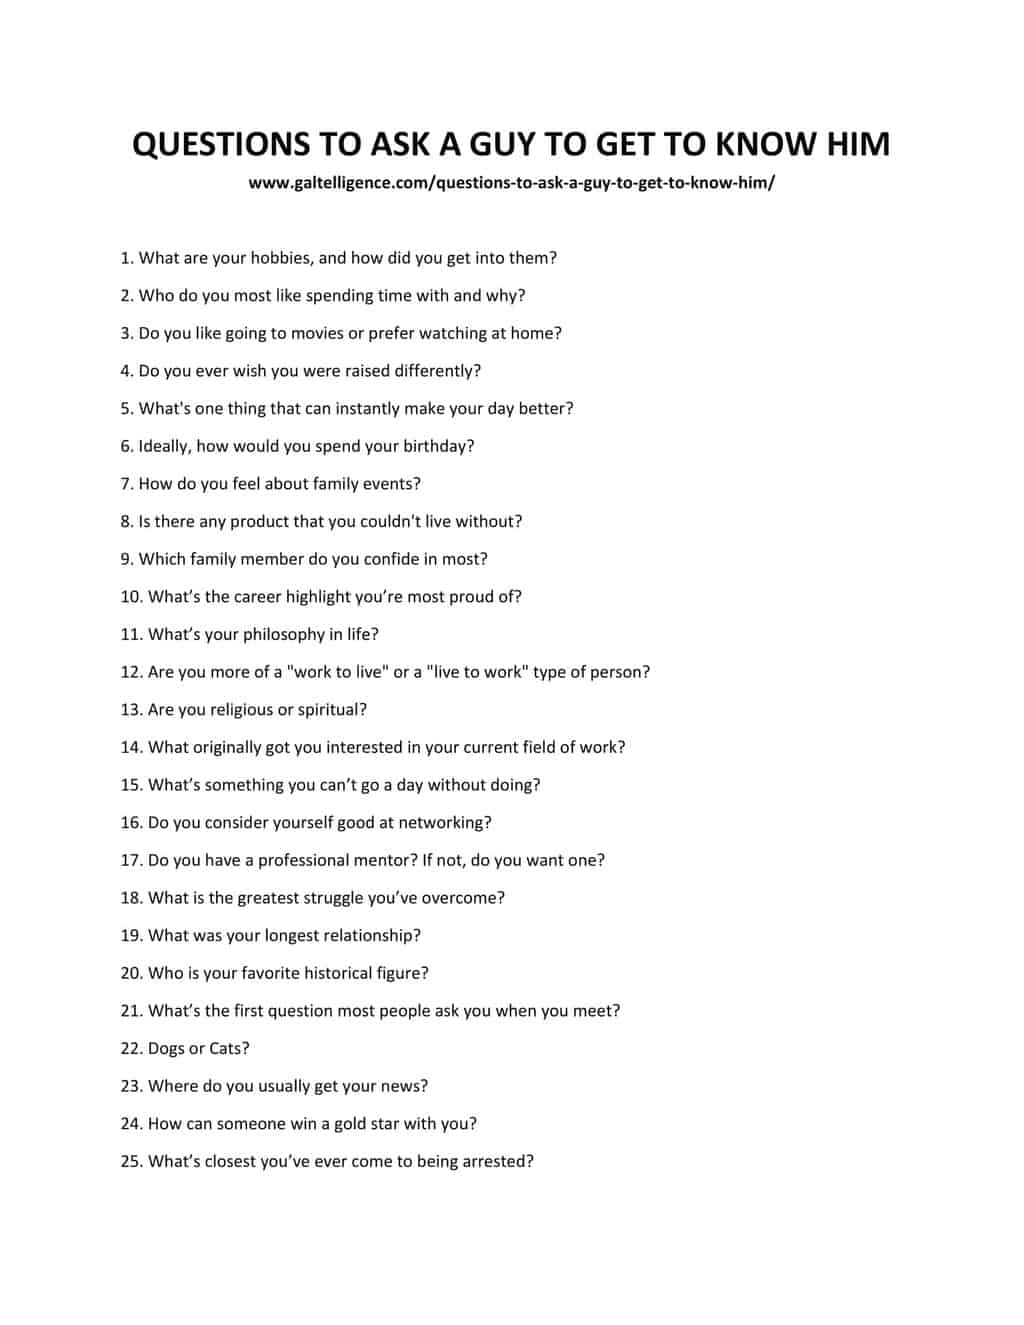 QUESTIONS_TO_ASK_A_GUY_TO_GET_TO_KNOW_HIM-1[1]